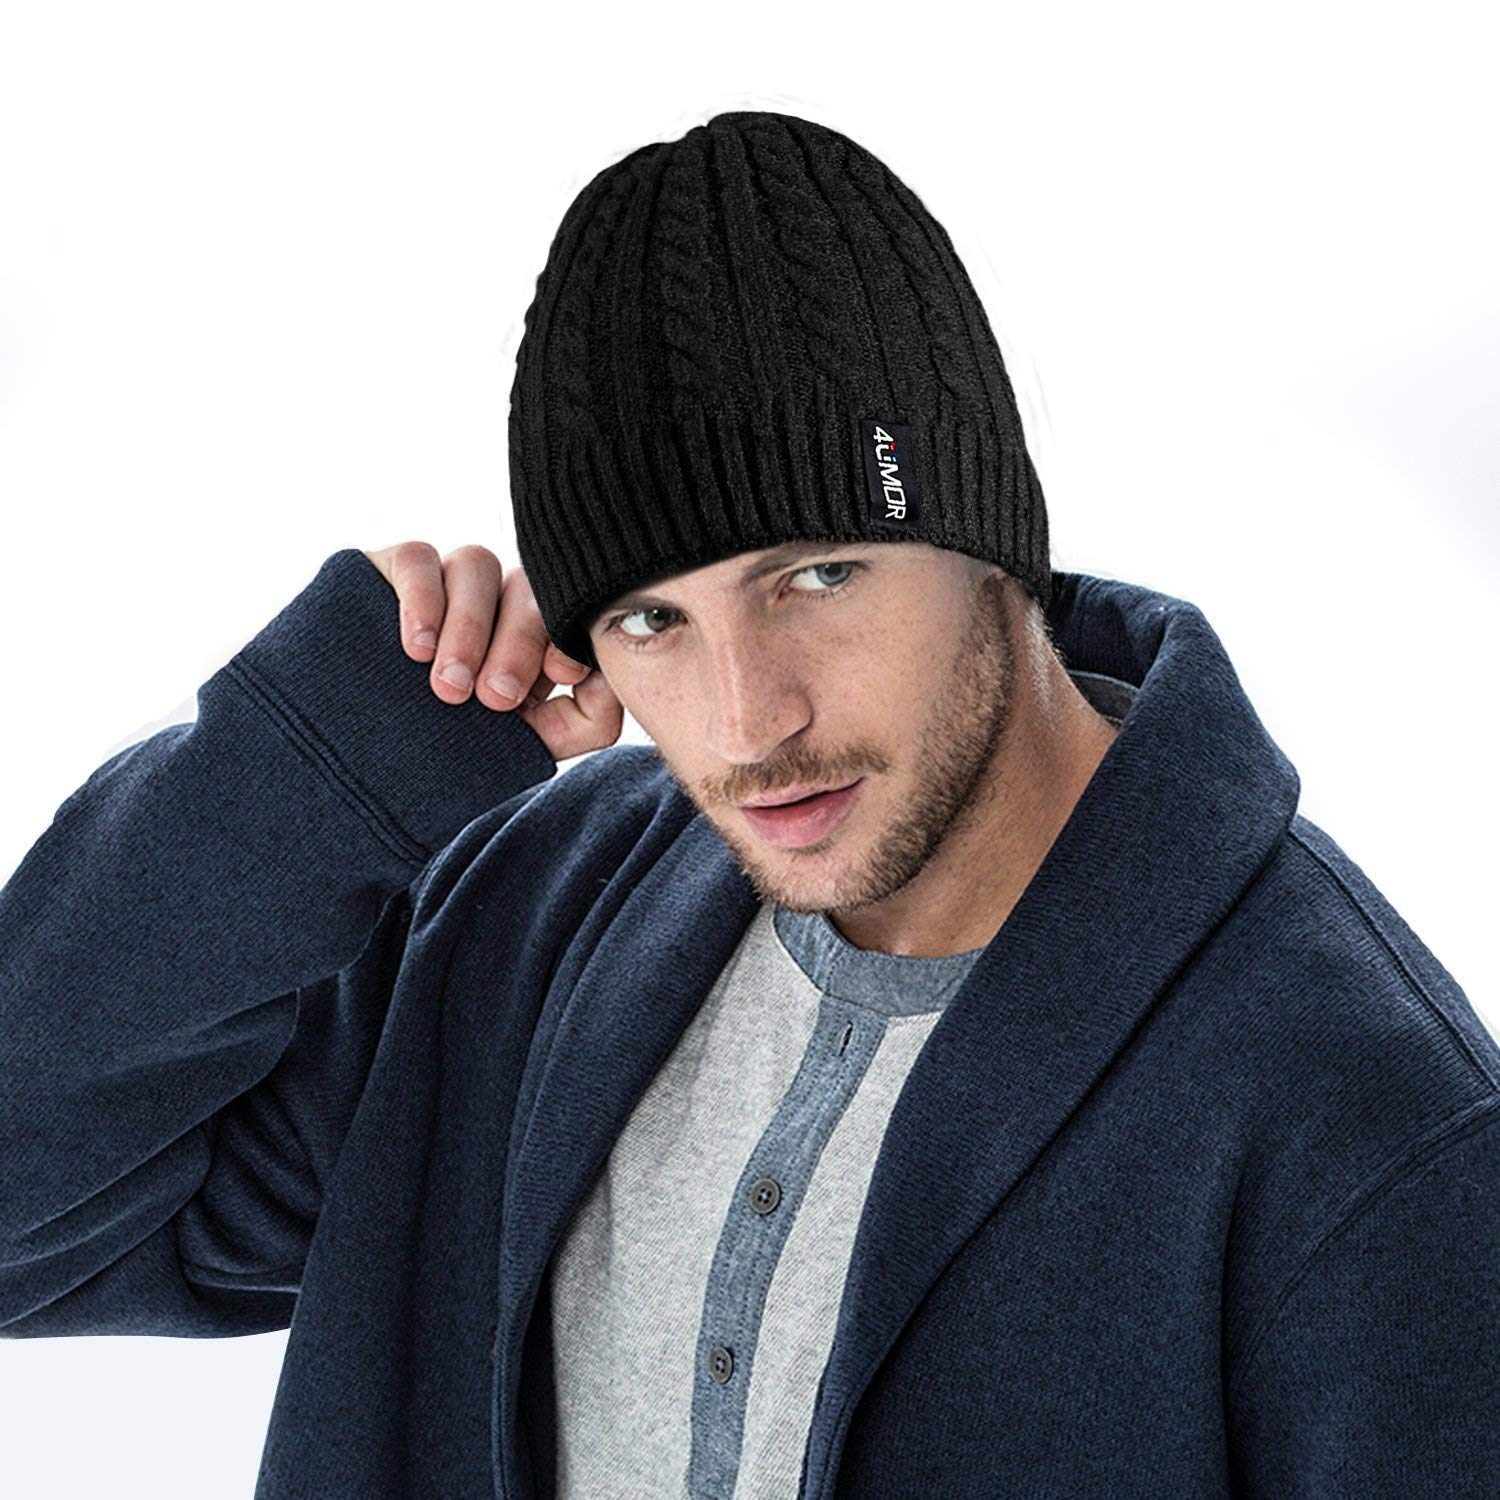 4UMOR Winter Beanie Hats for Men Women Warm Knit Hat Thick Soft Skull Cap  Black at Amazon Men s Clothing store  f1139d281f20